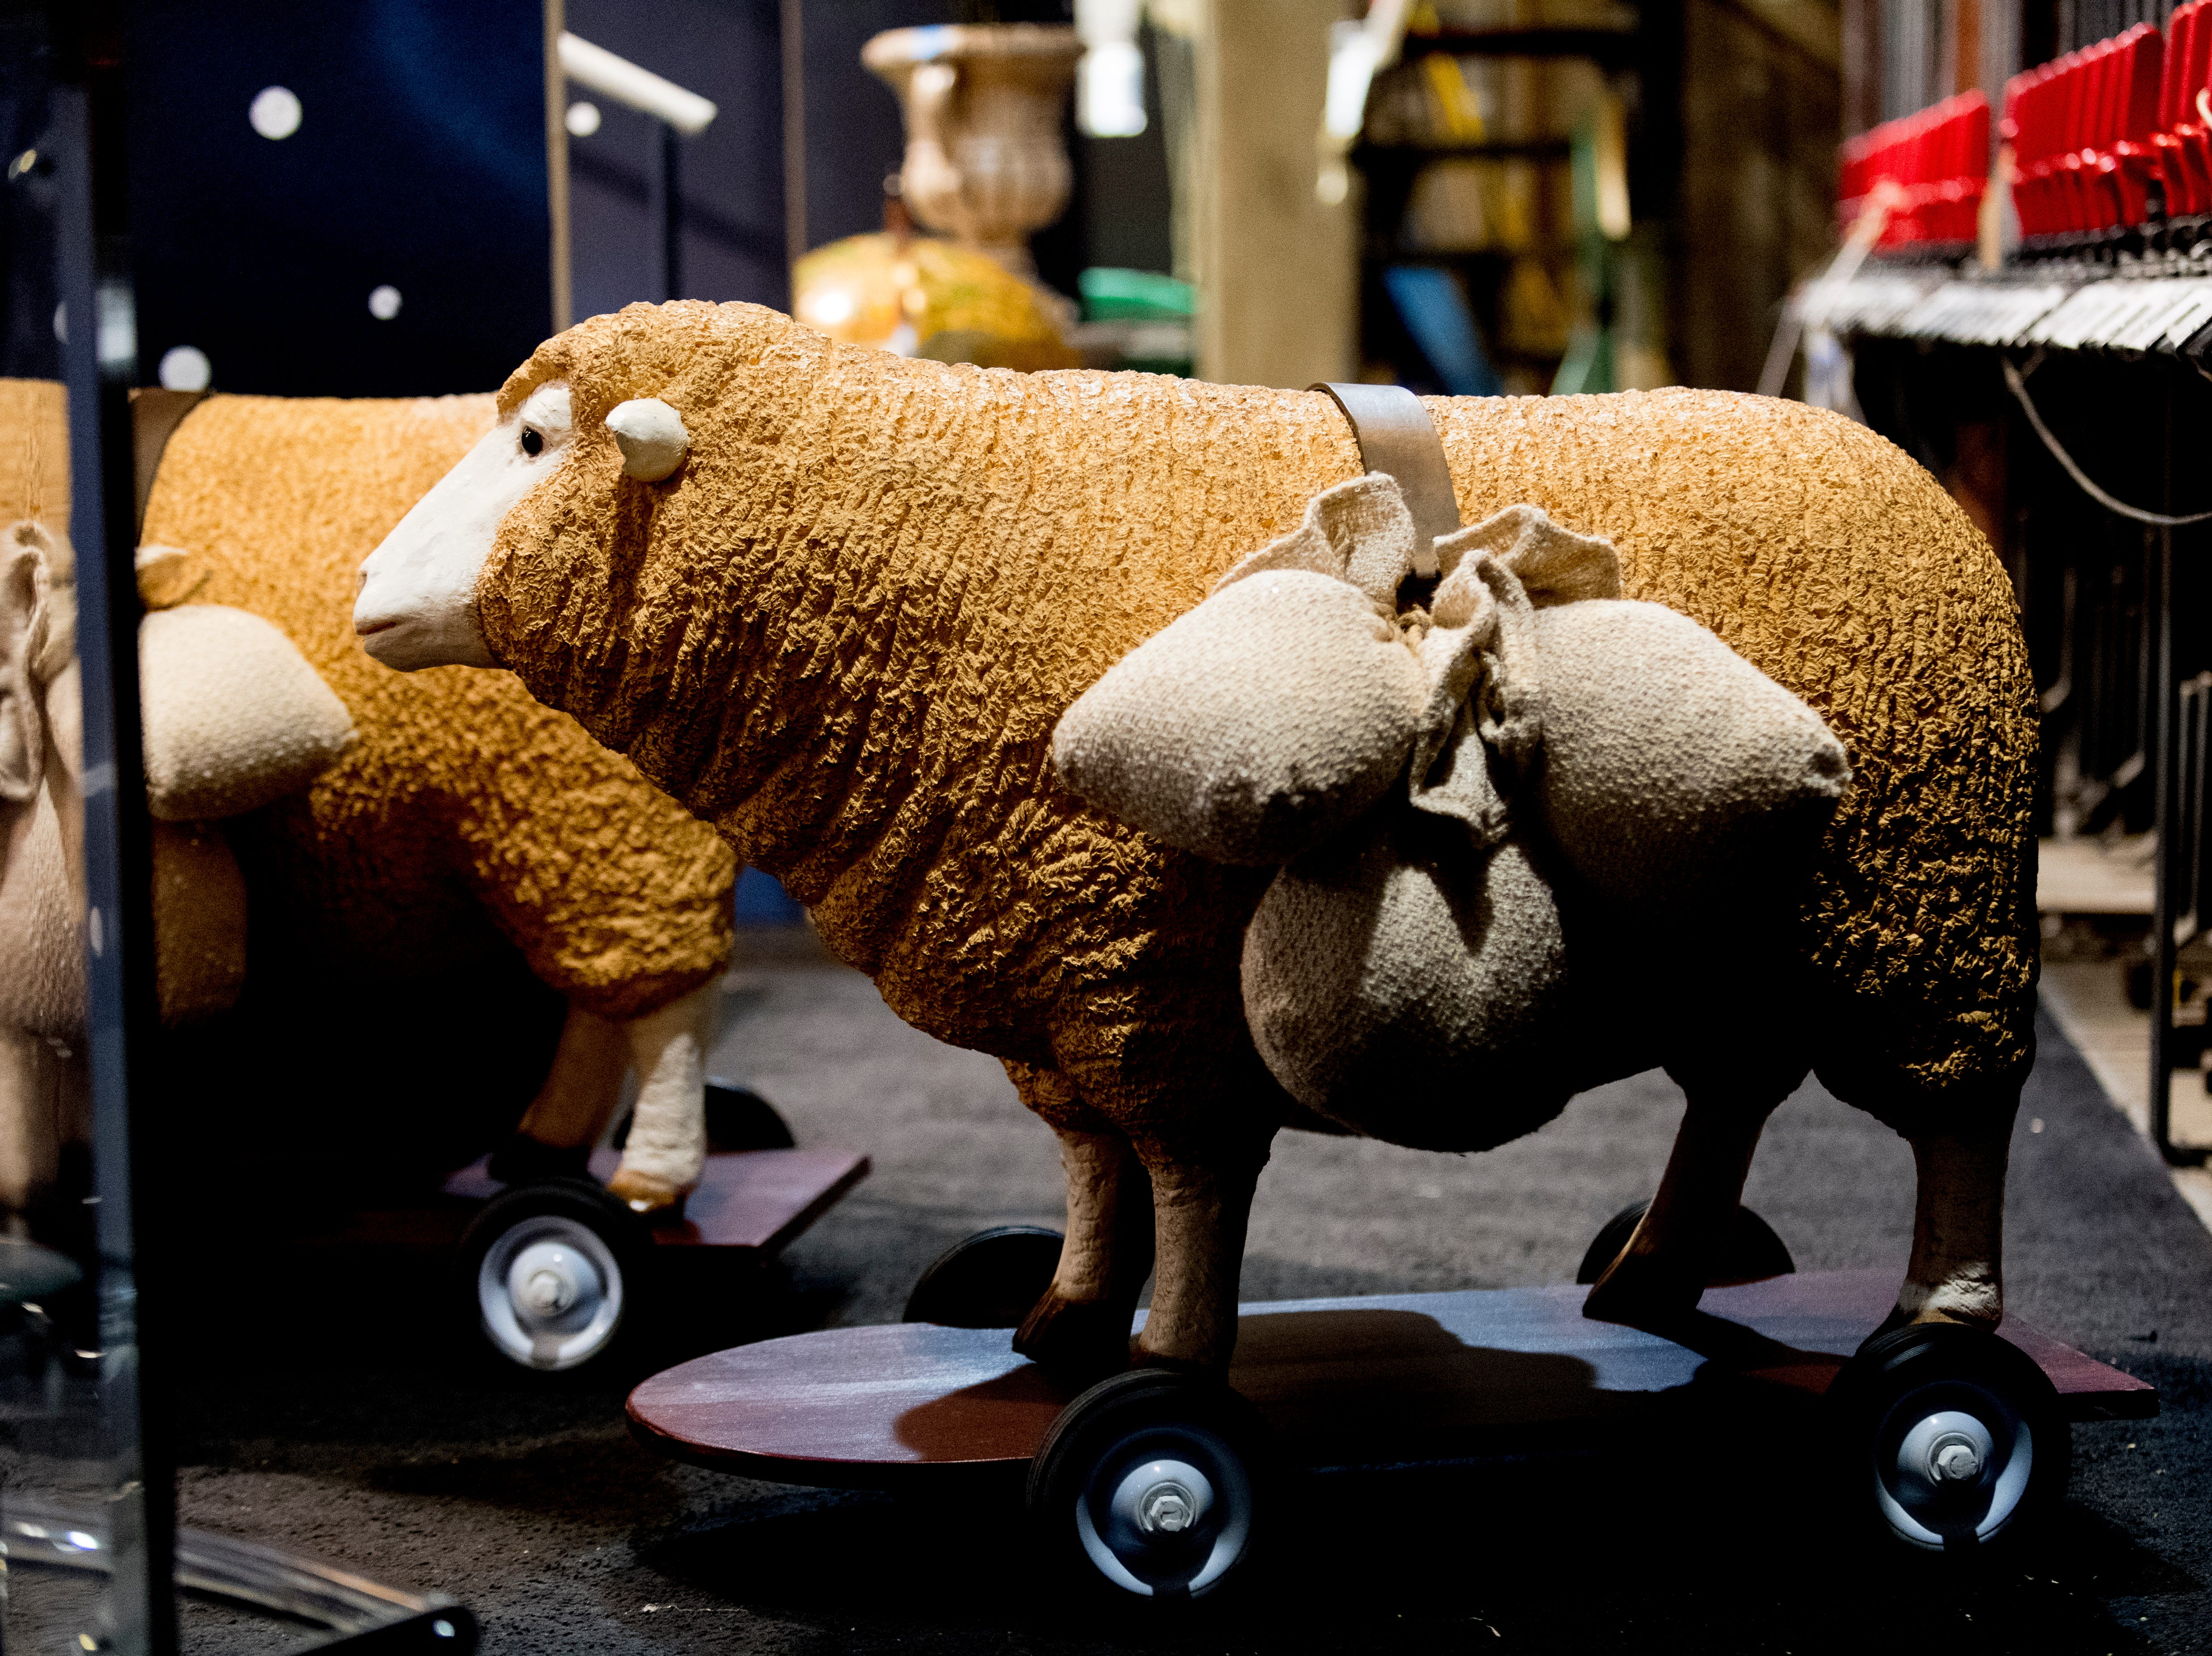 Sheep on wheels are part of the show as seen behind stage ahead of opening day for Candide at the Clarence Brown Theatre  in Knoxville, Tennessee on Tuesday, August 14, 2018. Leonard BernsteinÕs acclaimed operetta, Candide, is to open Friday, August 31, with previews beginning August 29.